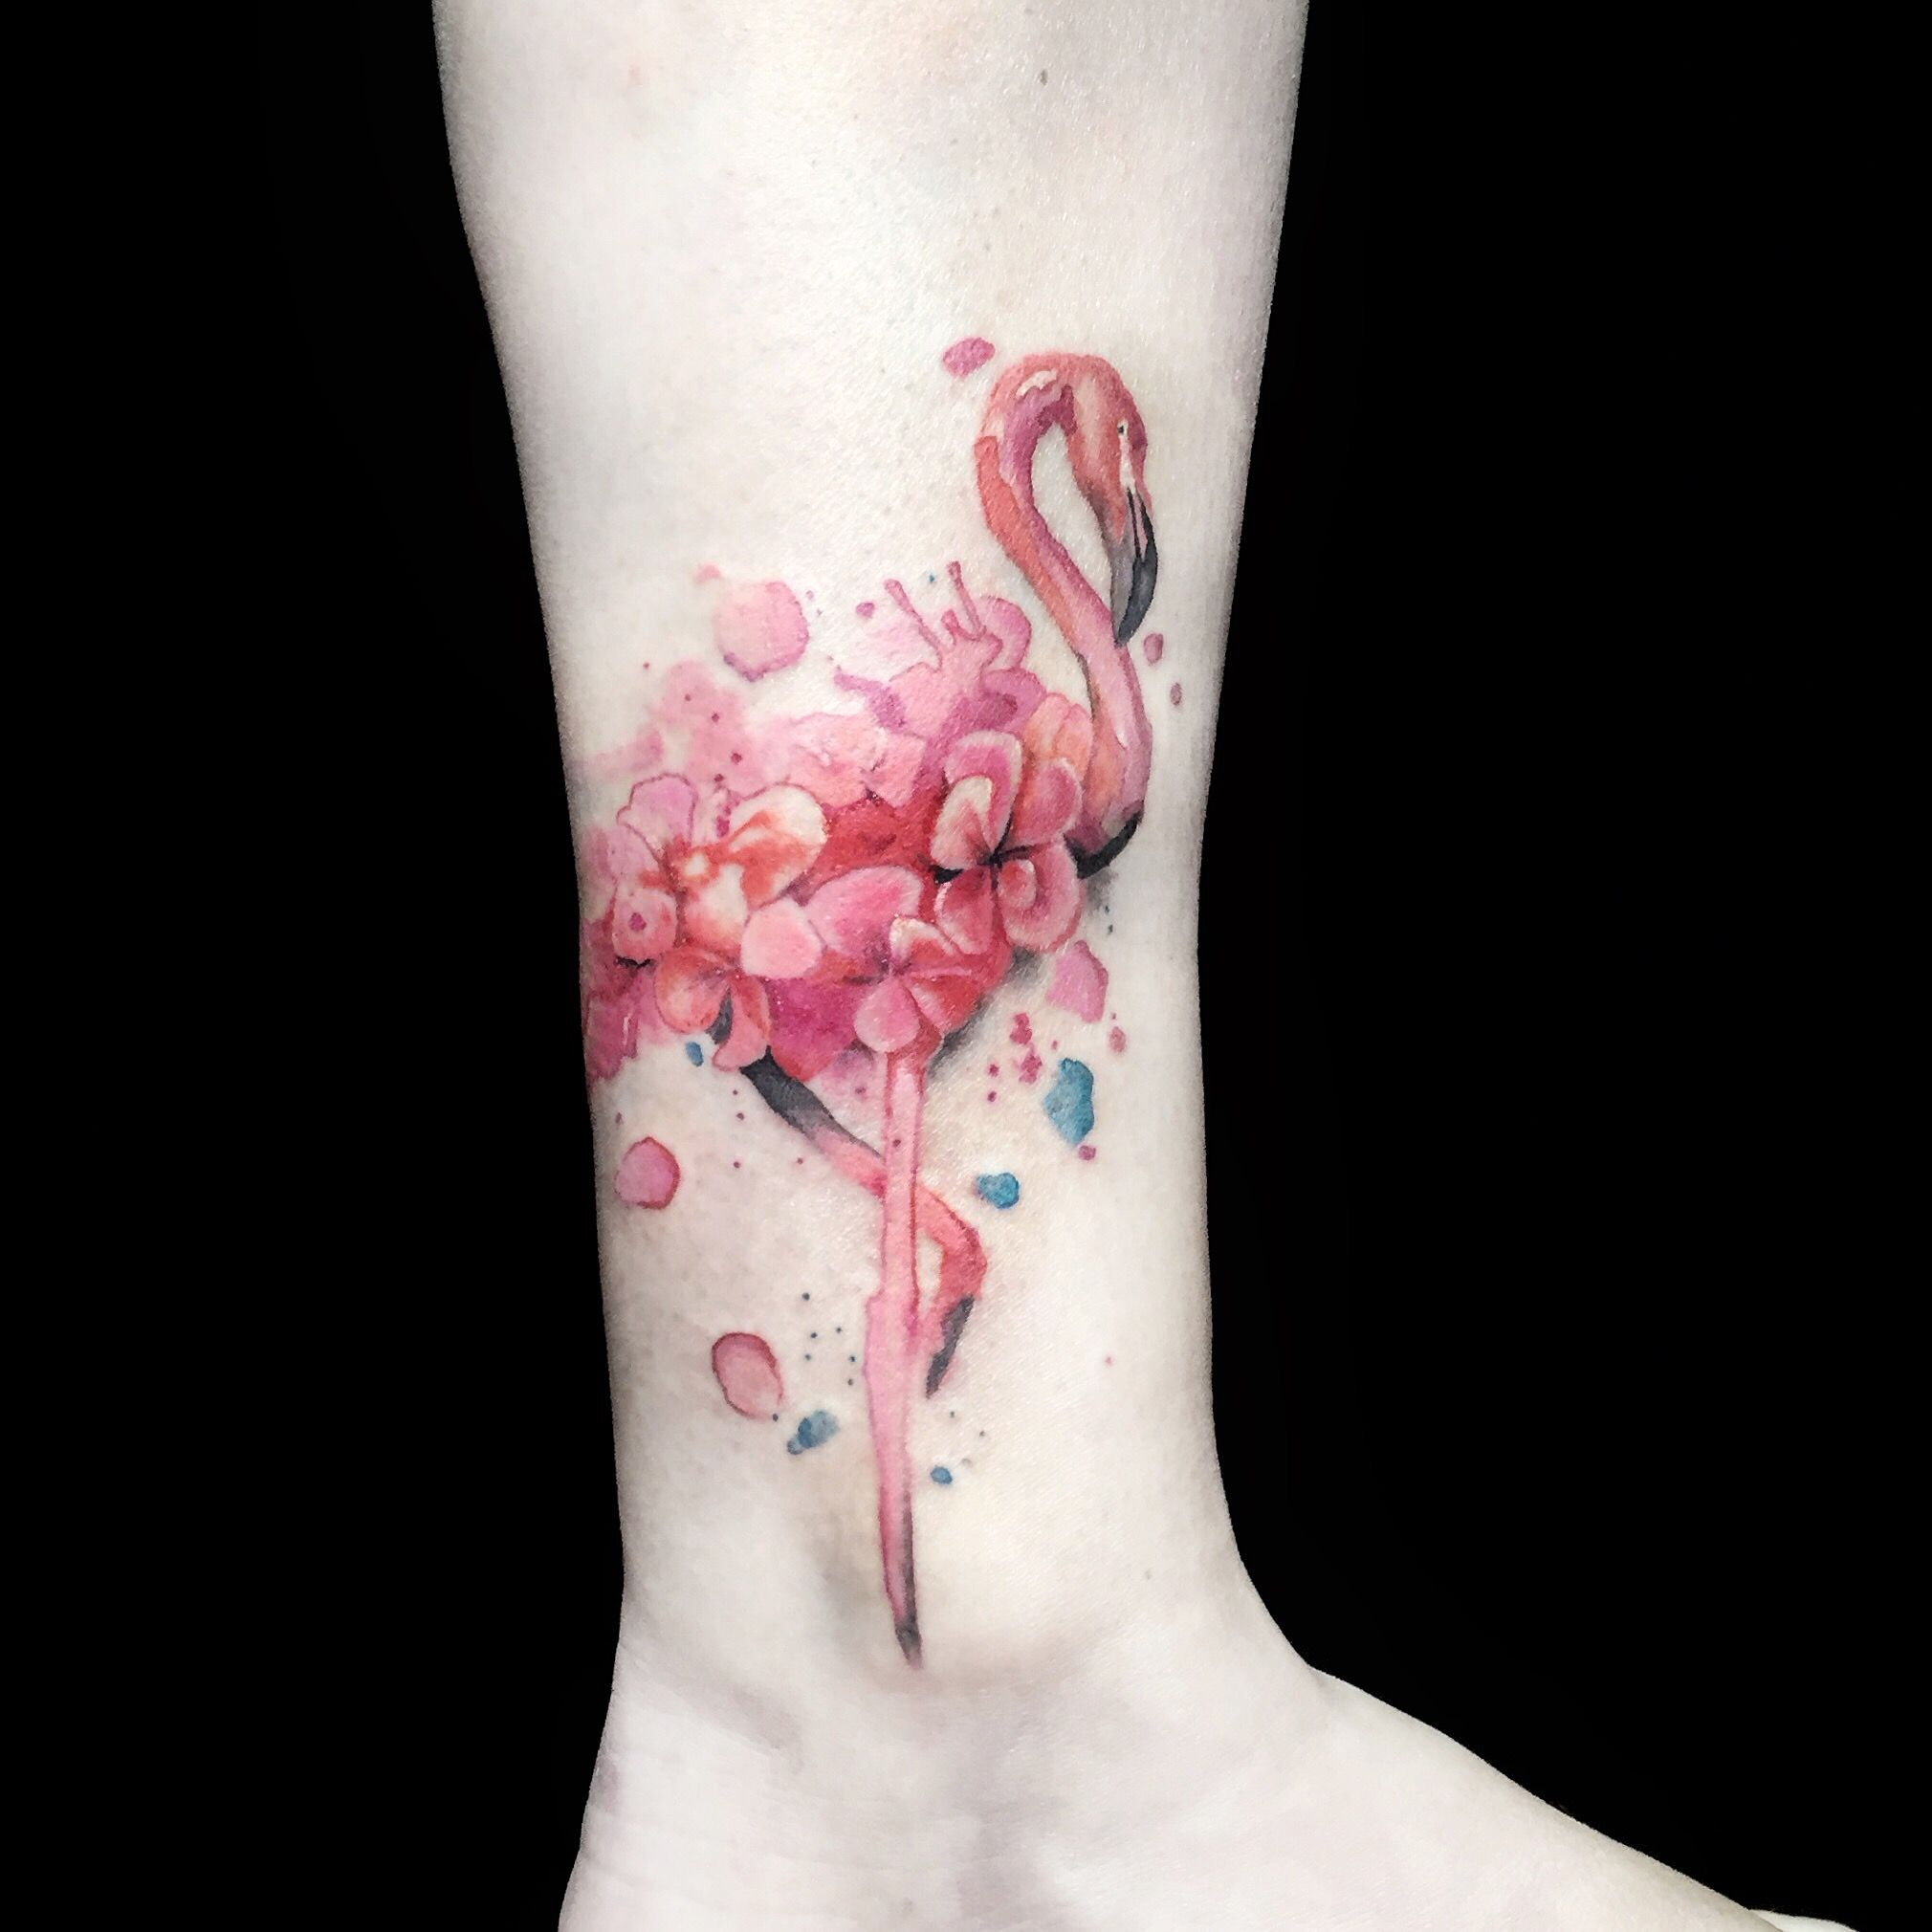 Watercolor flamingo tattoo | Tattoo Designs | Pinterest